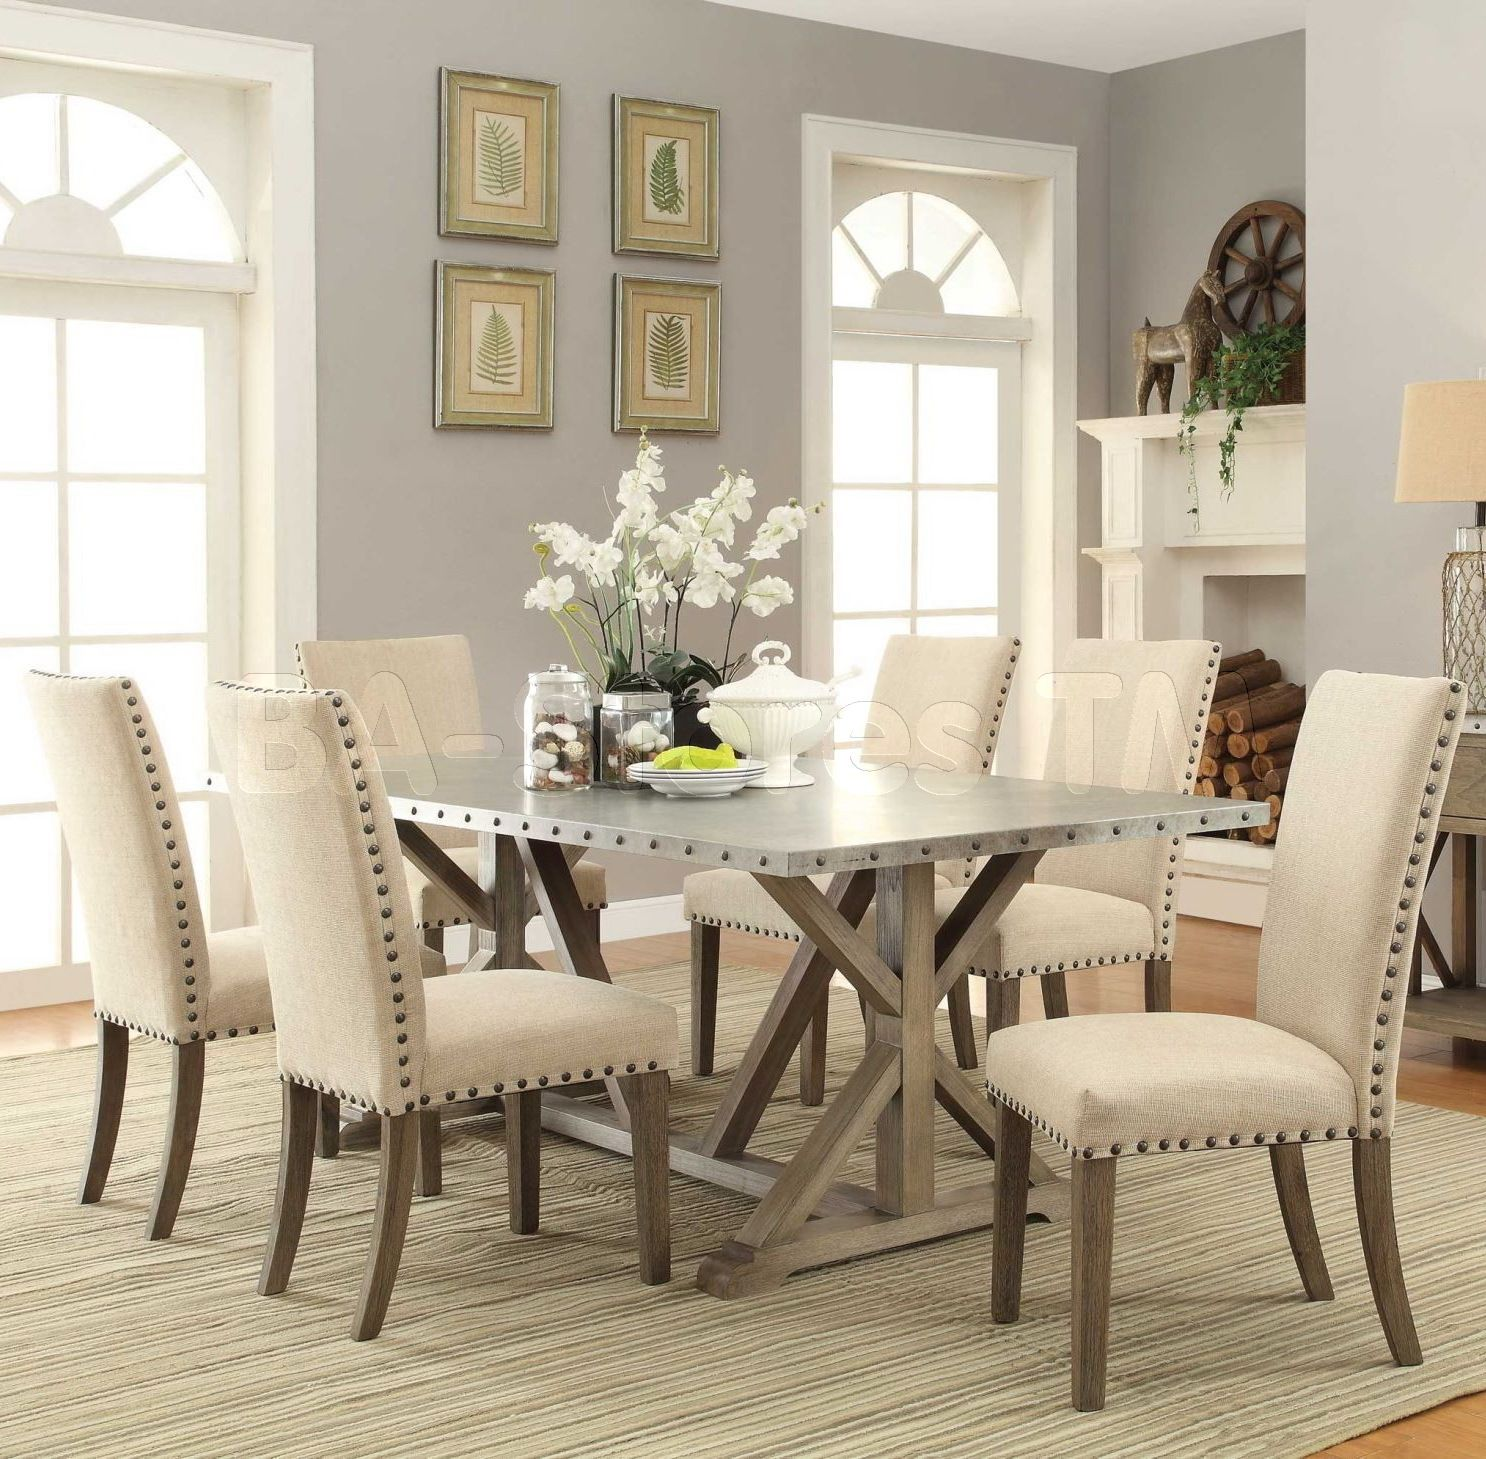 Cool Best Driftwood Dining Room Table On Home Design Ideas With - Driftwood dining table set